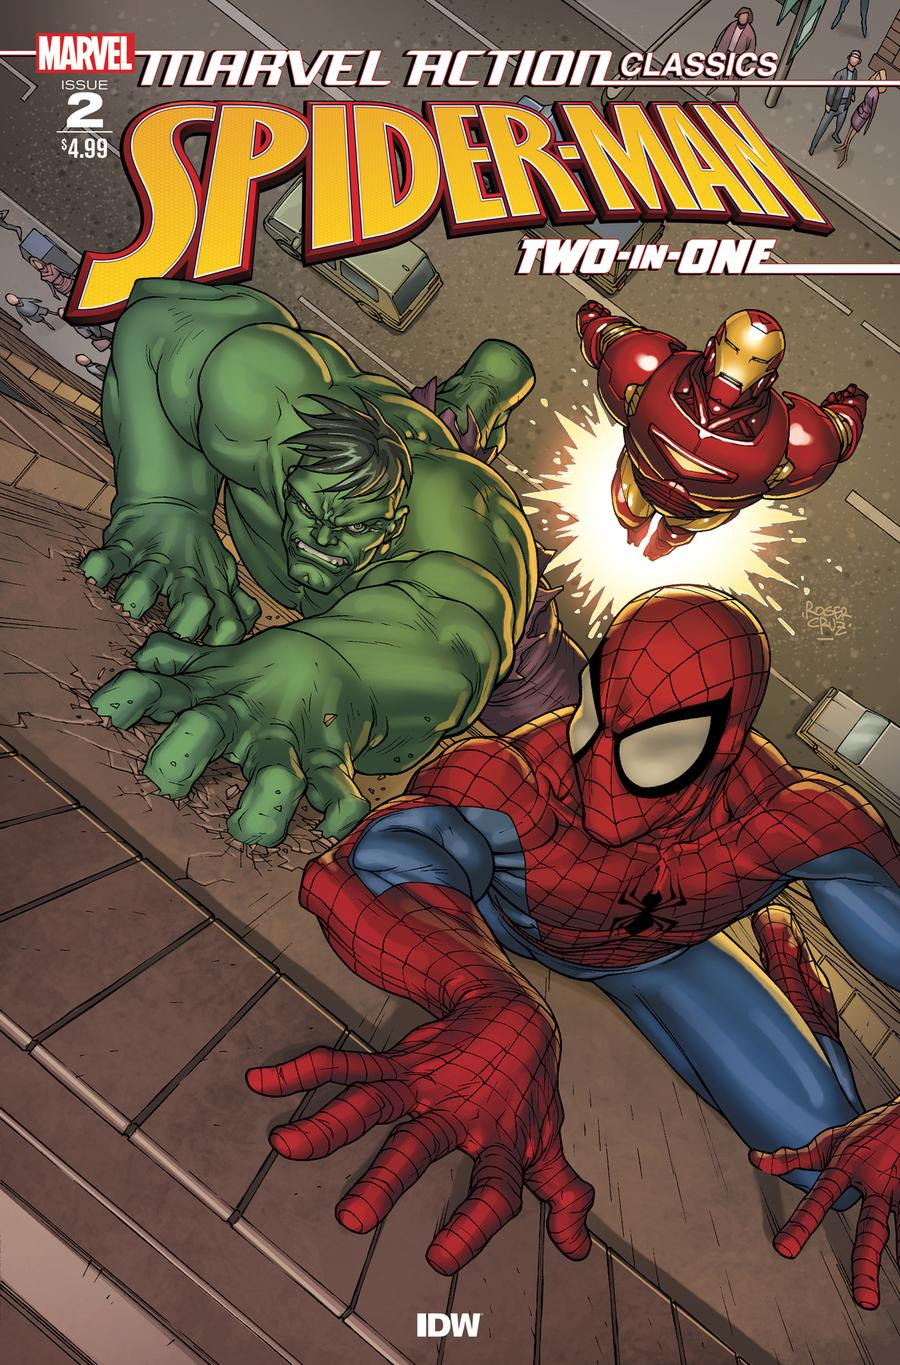 Marvel Action Classics Spider-Man Two-In-One #2